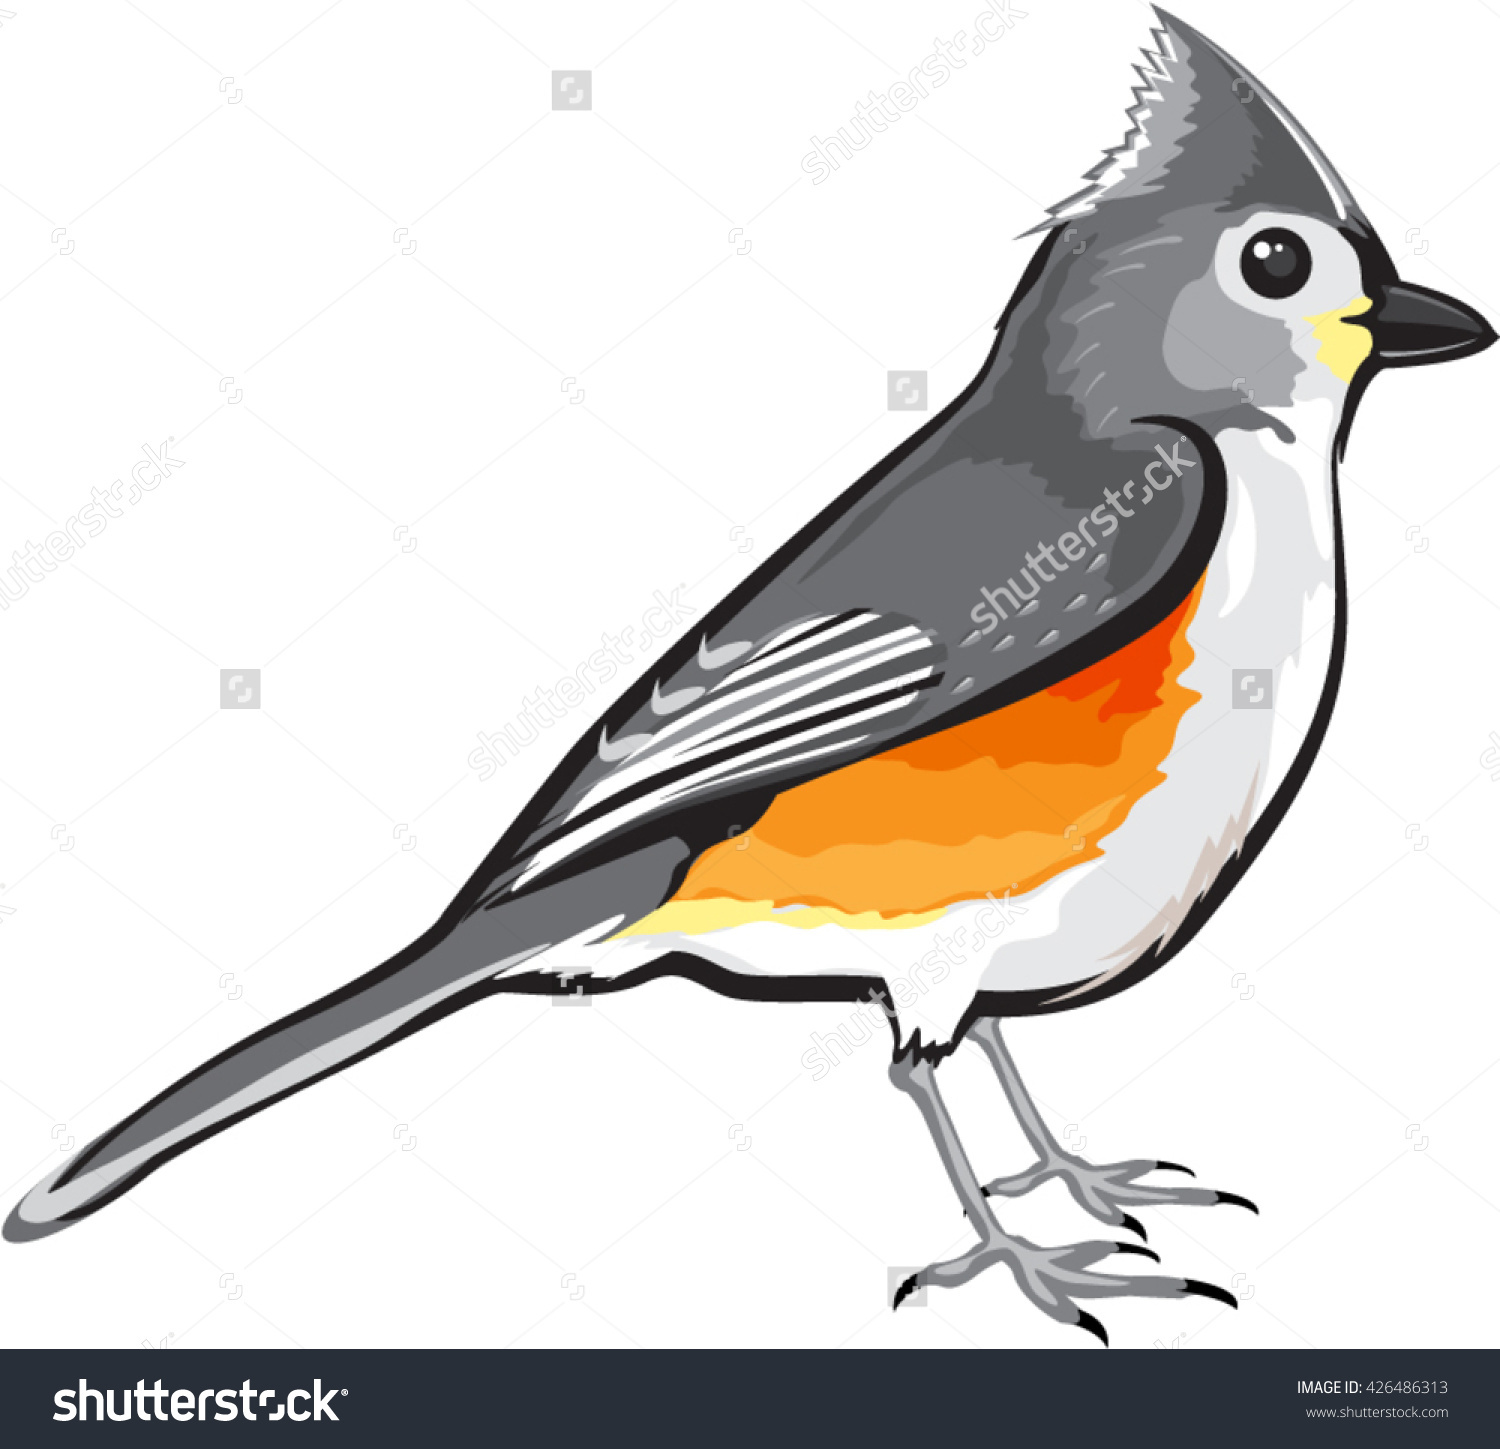 Tufted Titmouse Clip Art.